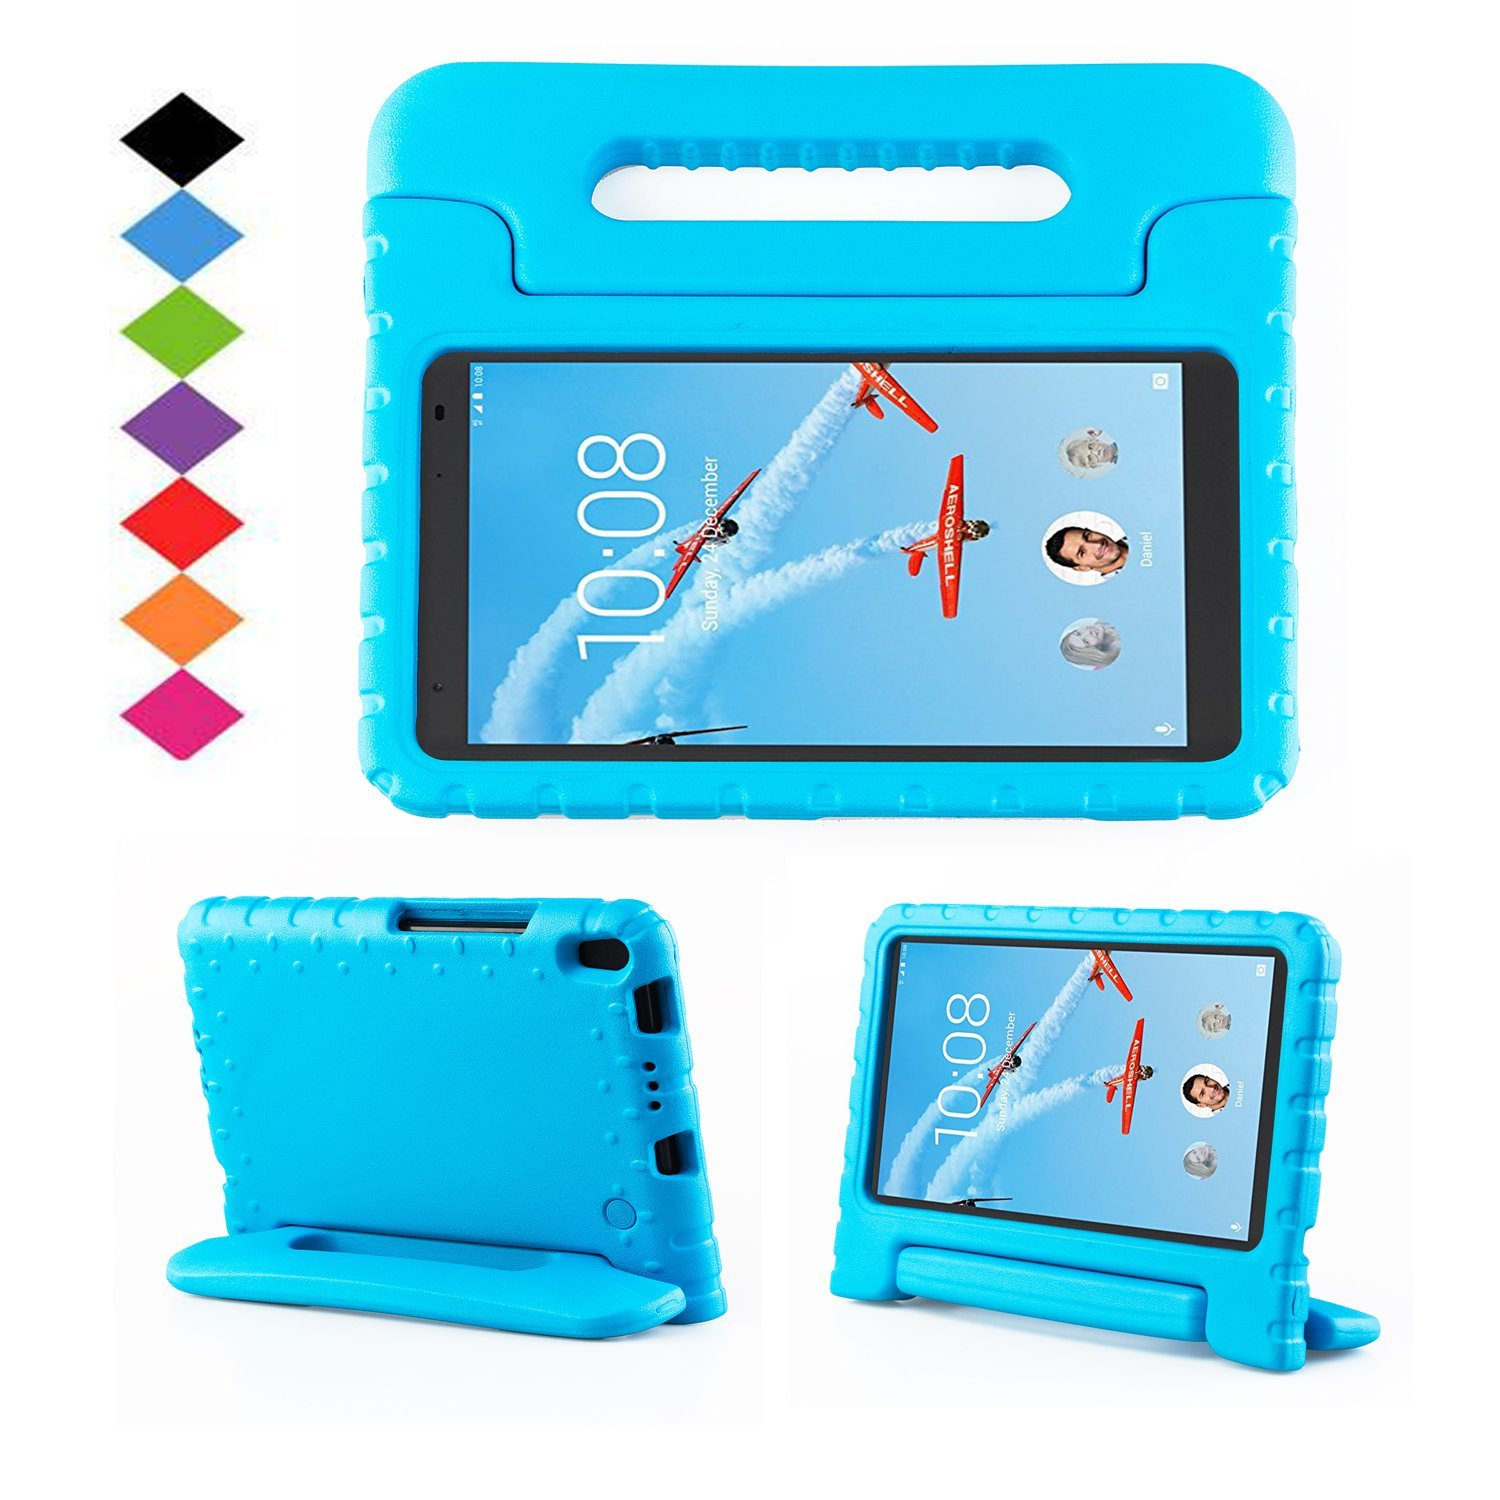 TIRIN Lenovo TAB 4 8 Plus Case- Light Weight EVA Shock Proof Convertible Handle Stand Case Cover for Lenovo TAB 4 8 Plus Tablet (2017 Release), Orange